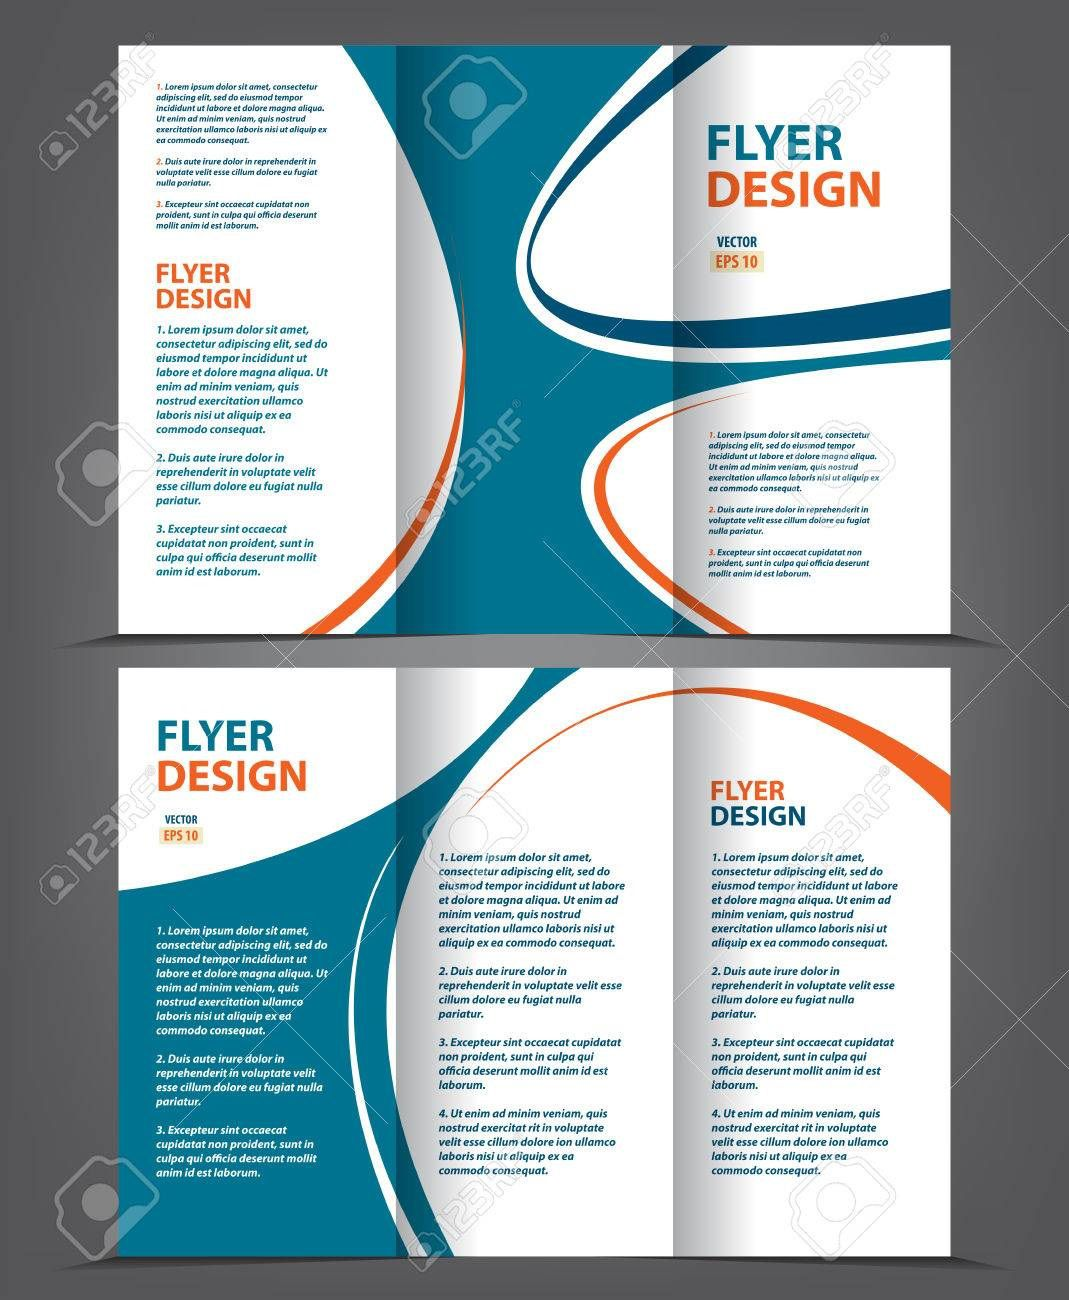 002 Frightening 3 Fold Brochure Template Highest Clarity  Templates For FreeFull